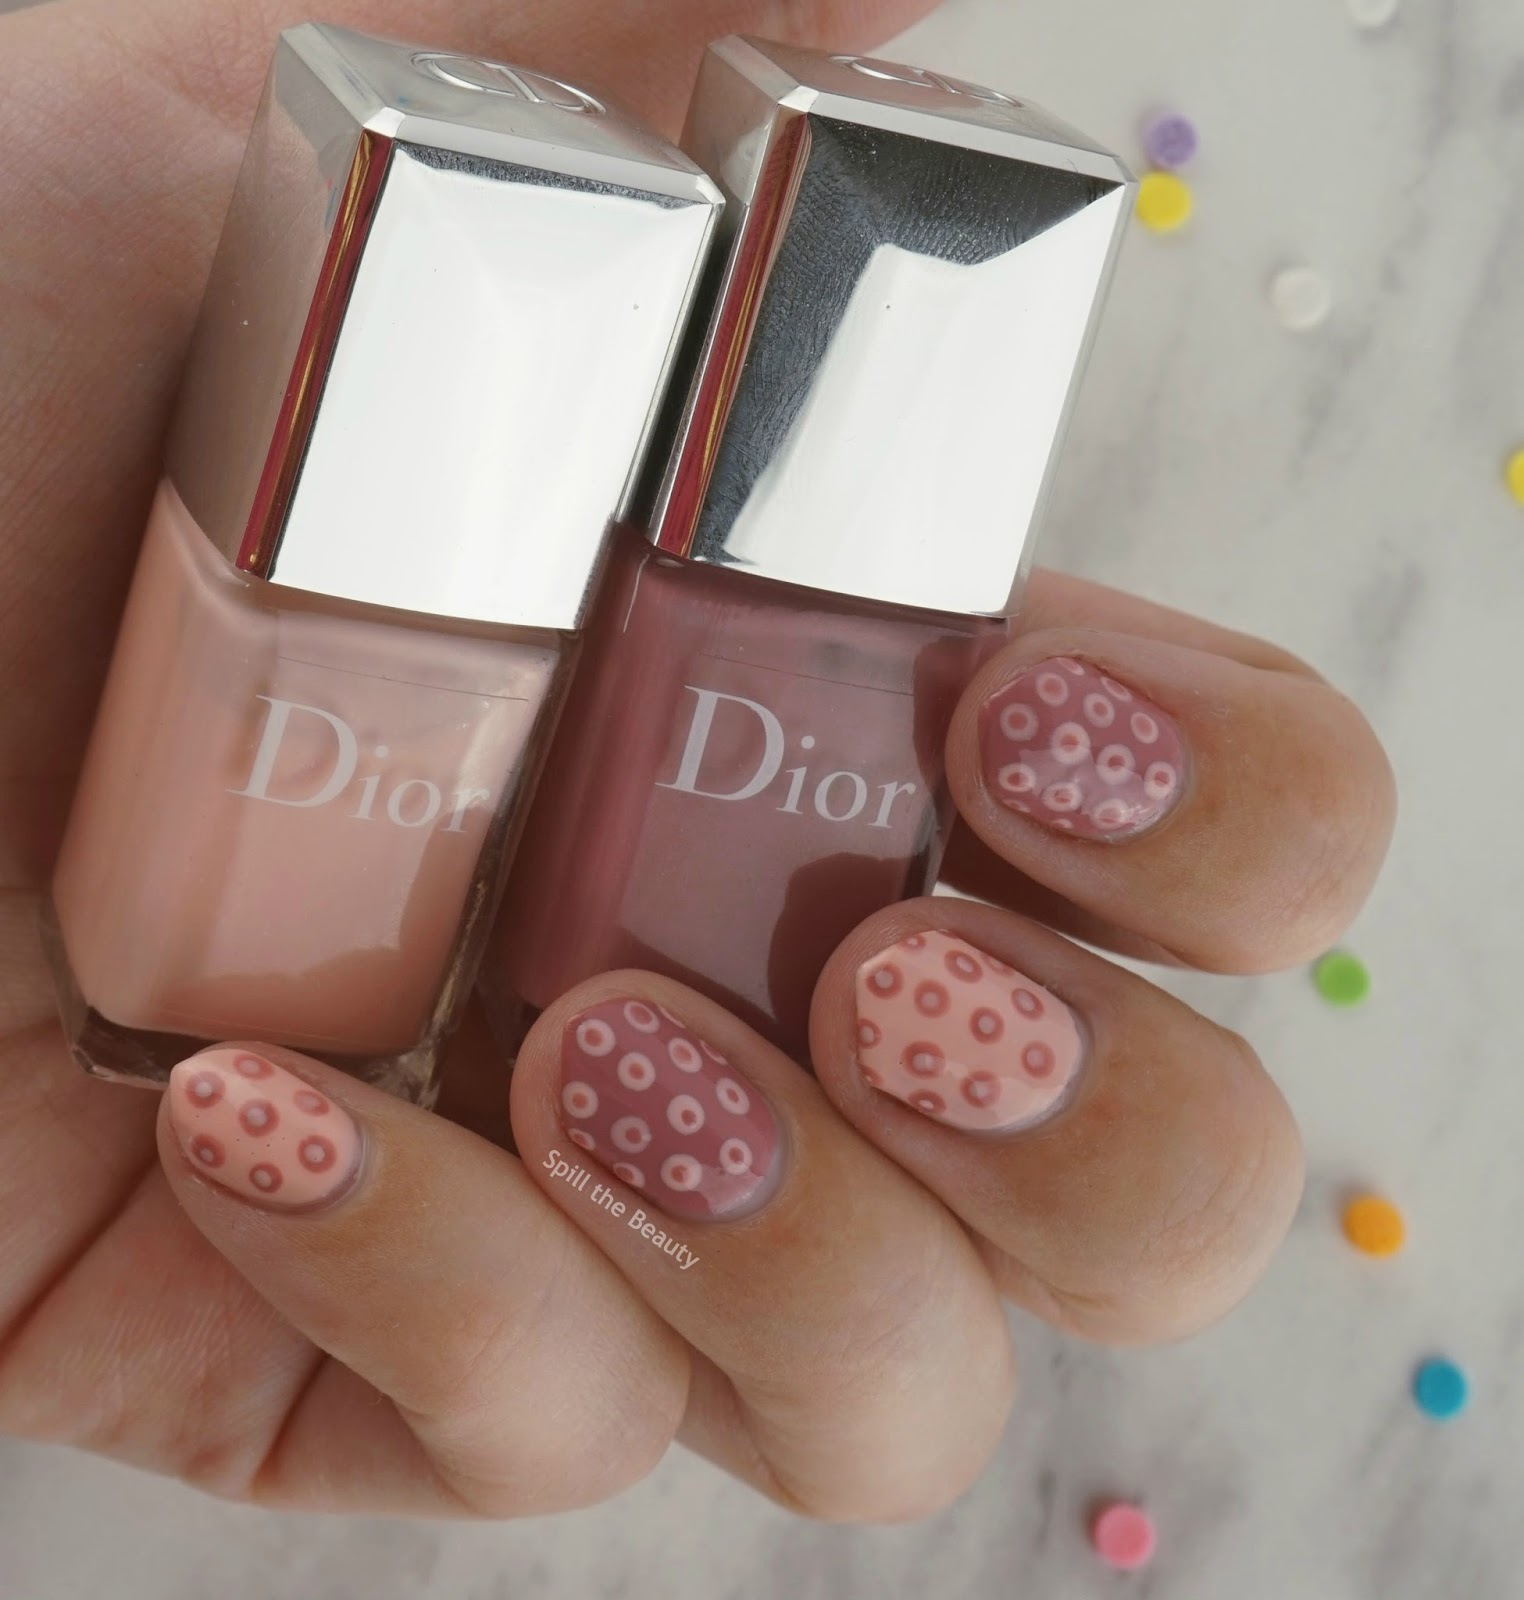 Dior Vernis #262 and #582 from the 003 'Plumetis' Kit